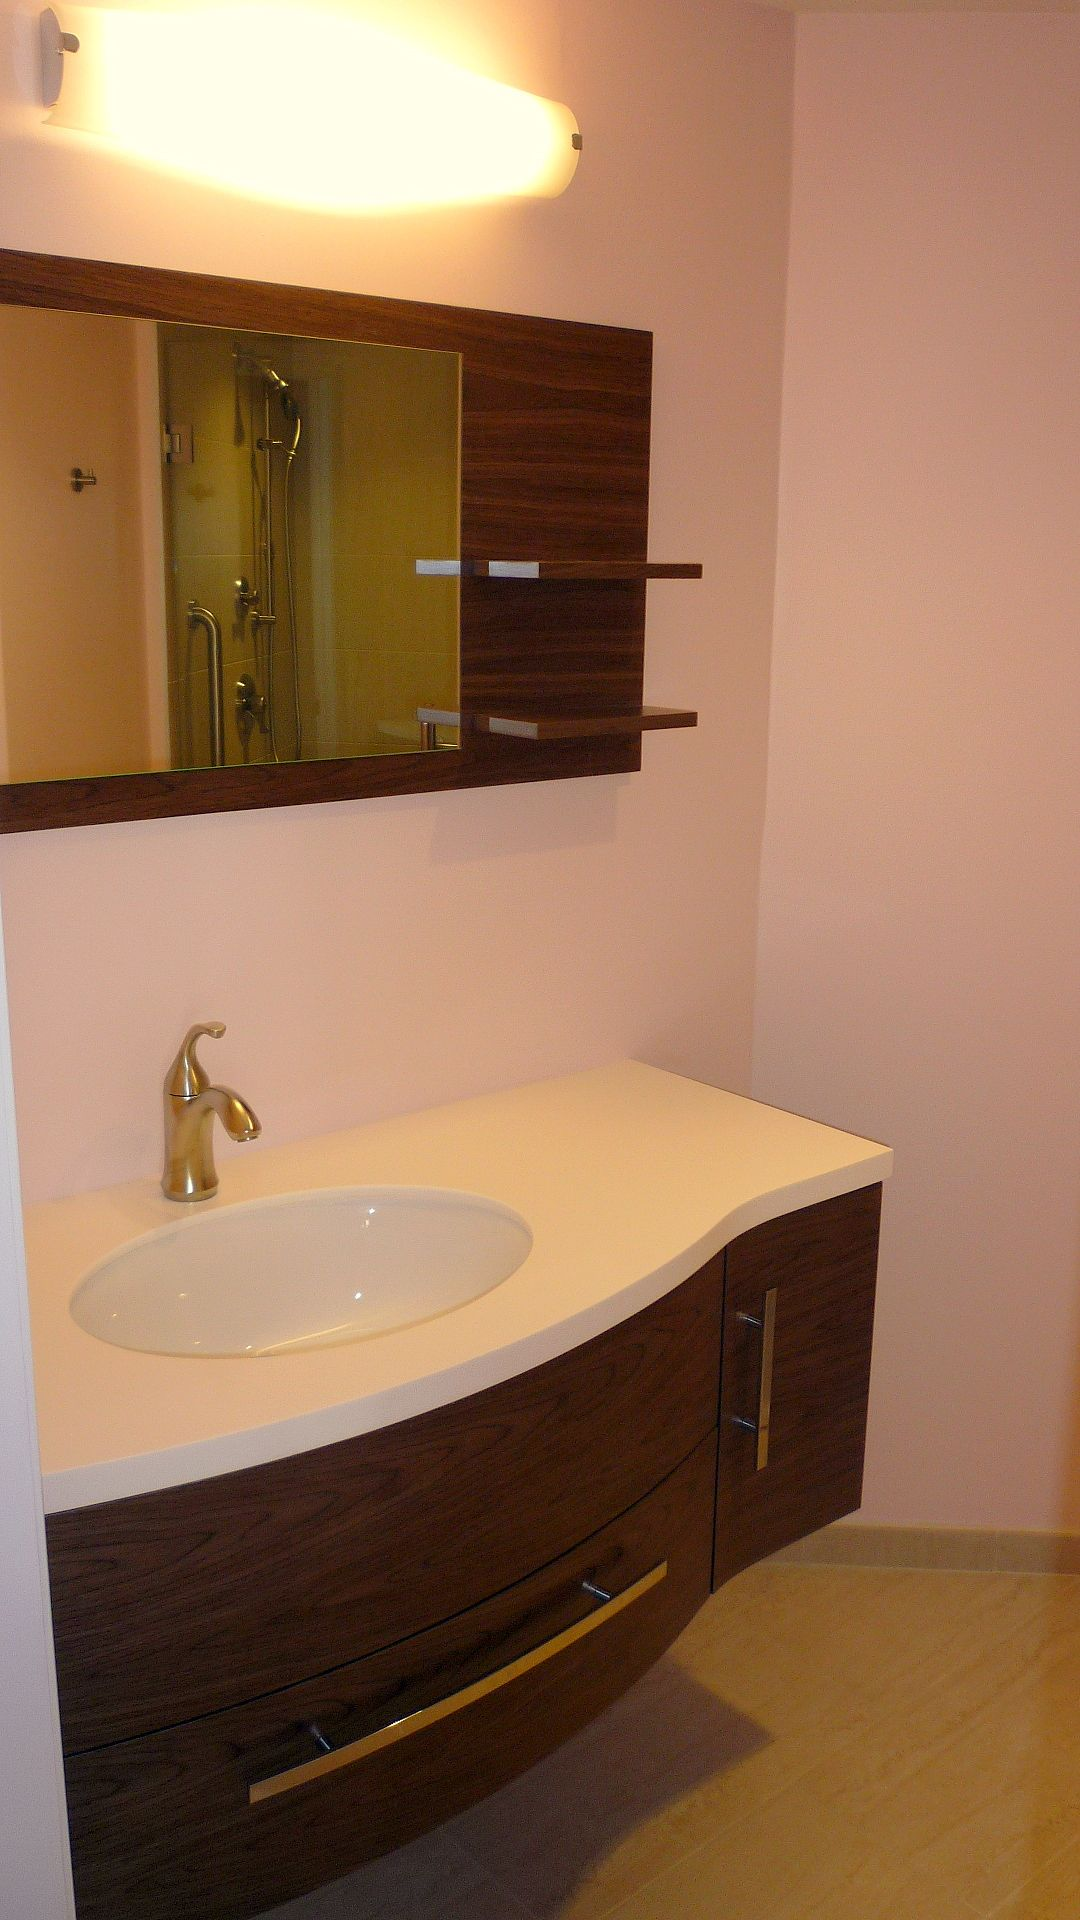 Light Coral Walls The Curvilinear Vanity Provides Great Storage For A Small Space